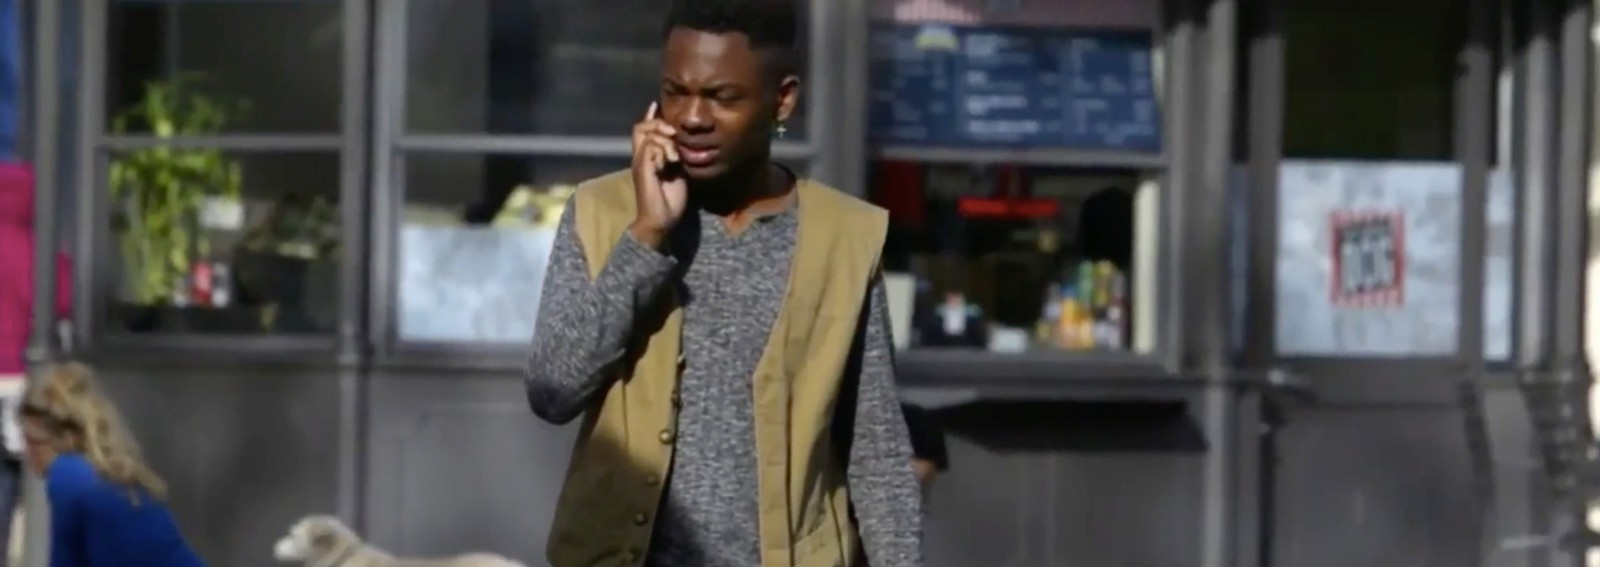 Huge star calls total strangers anonymously as part of epic prank